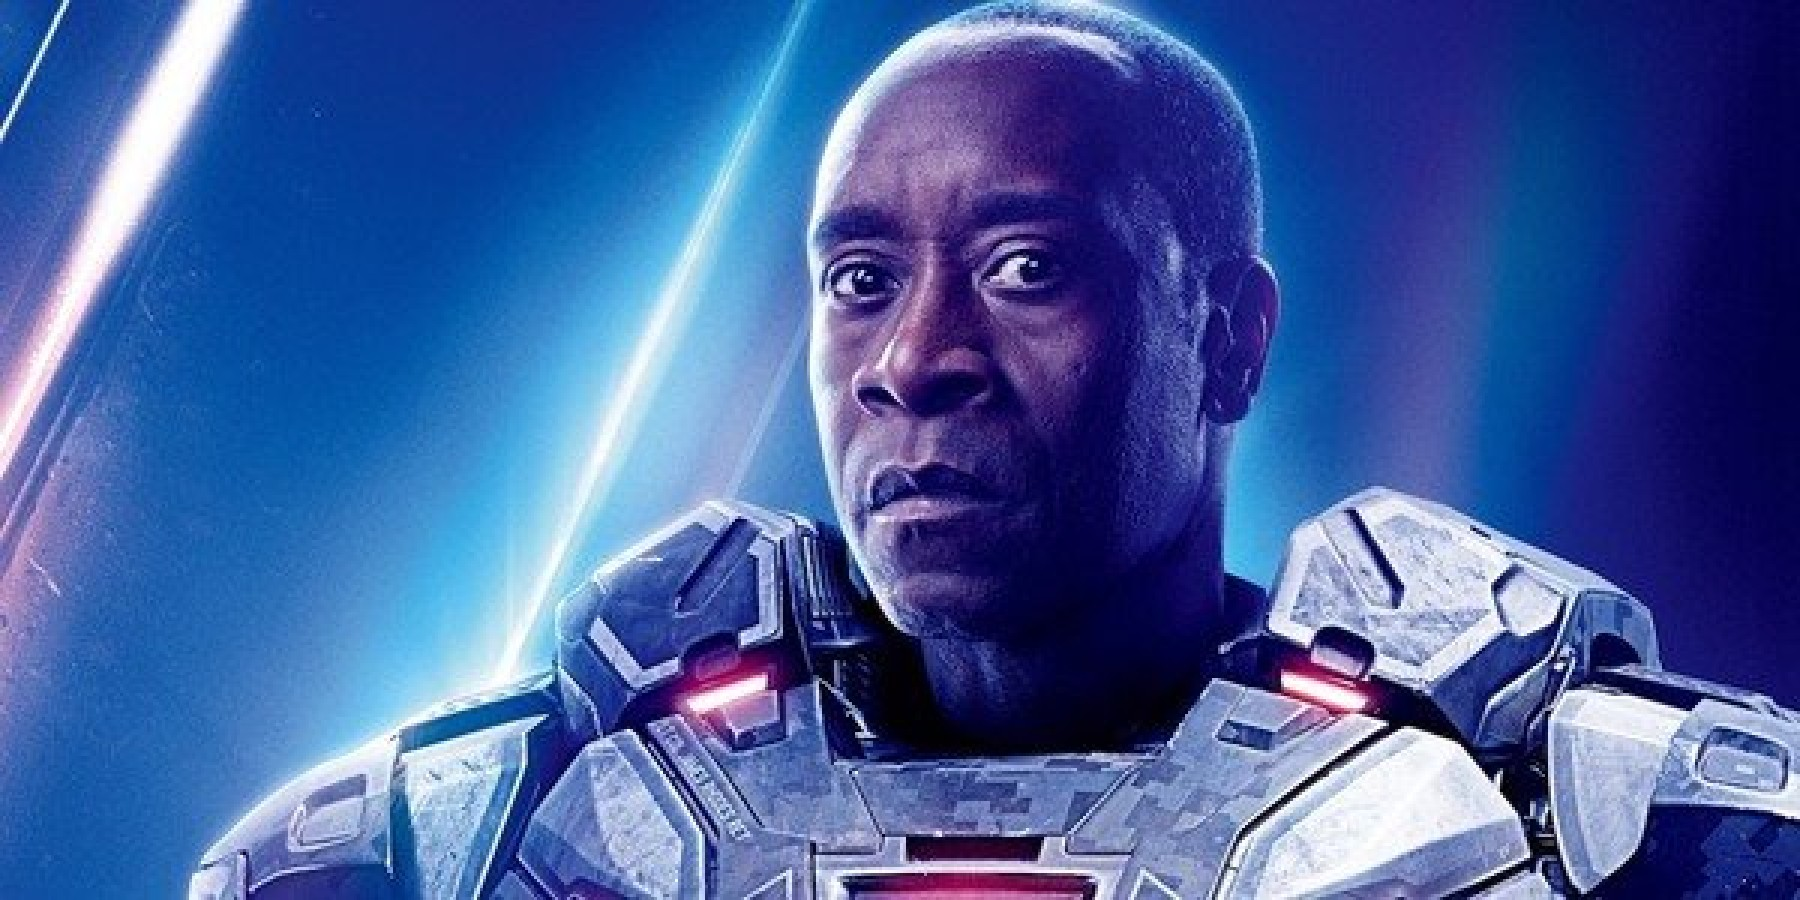 Don Cheadle to appear as War Machine in 'The Falcon and the Winter Soldier'